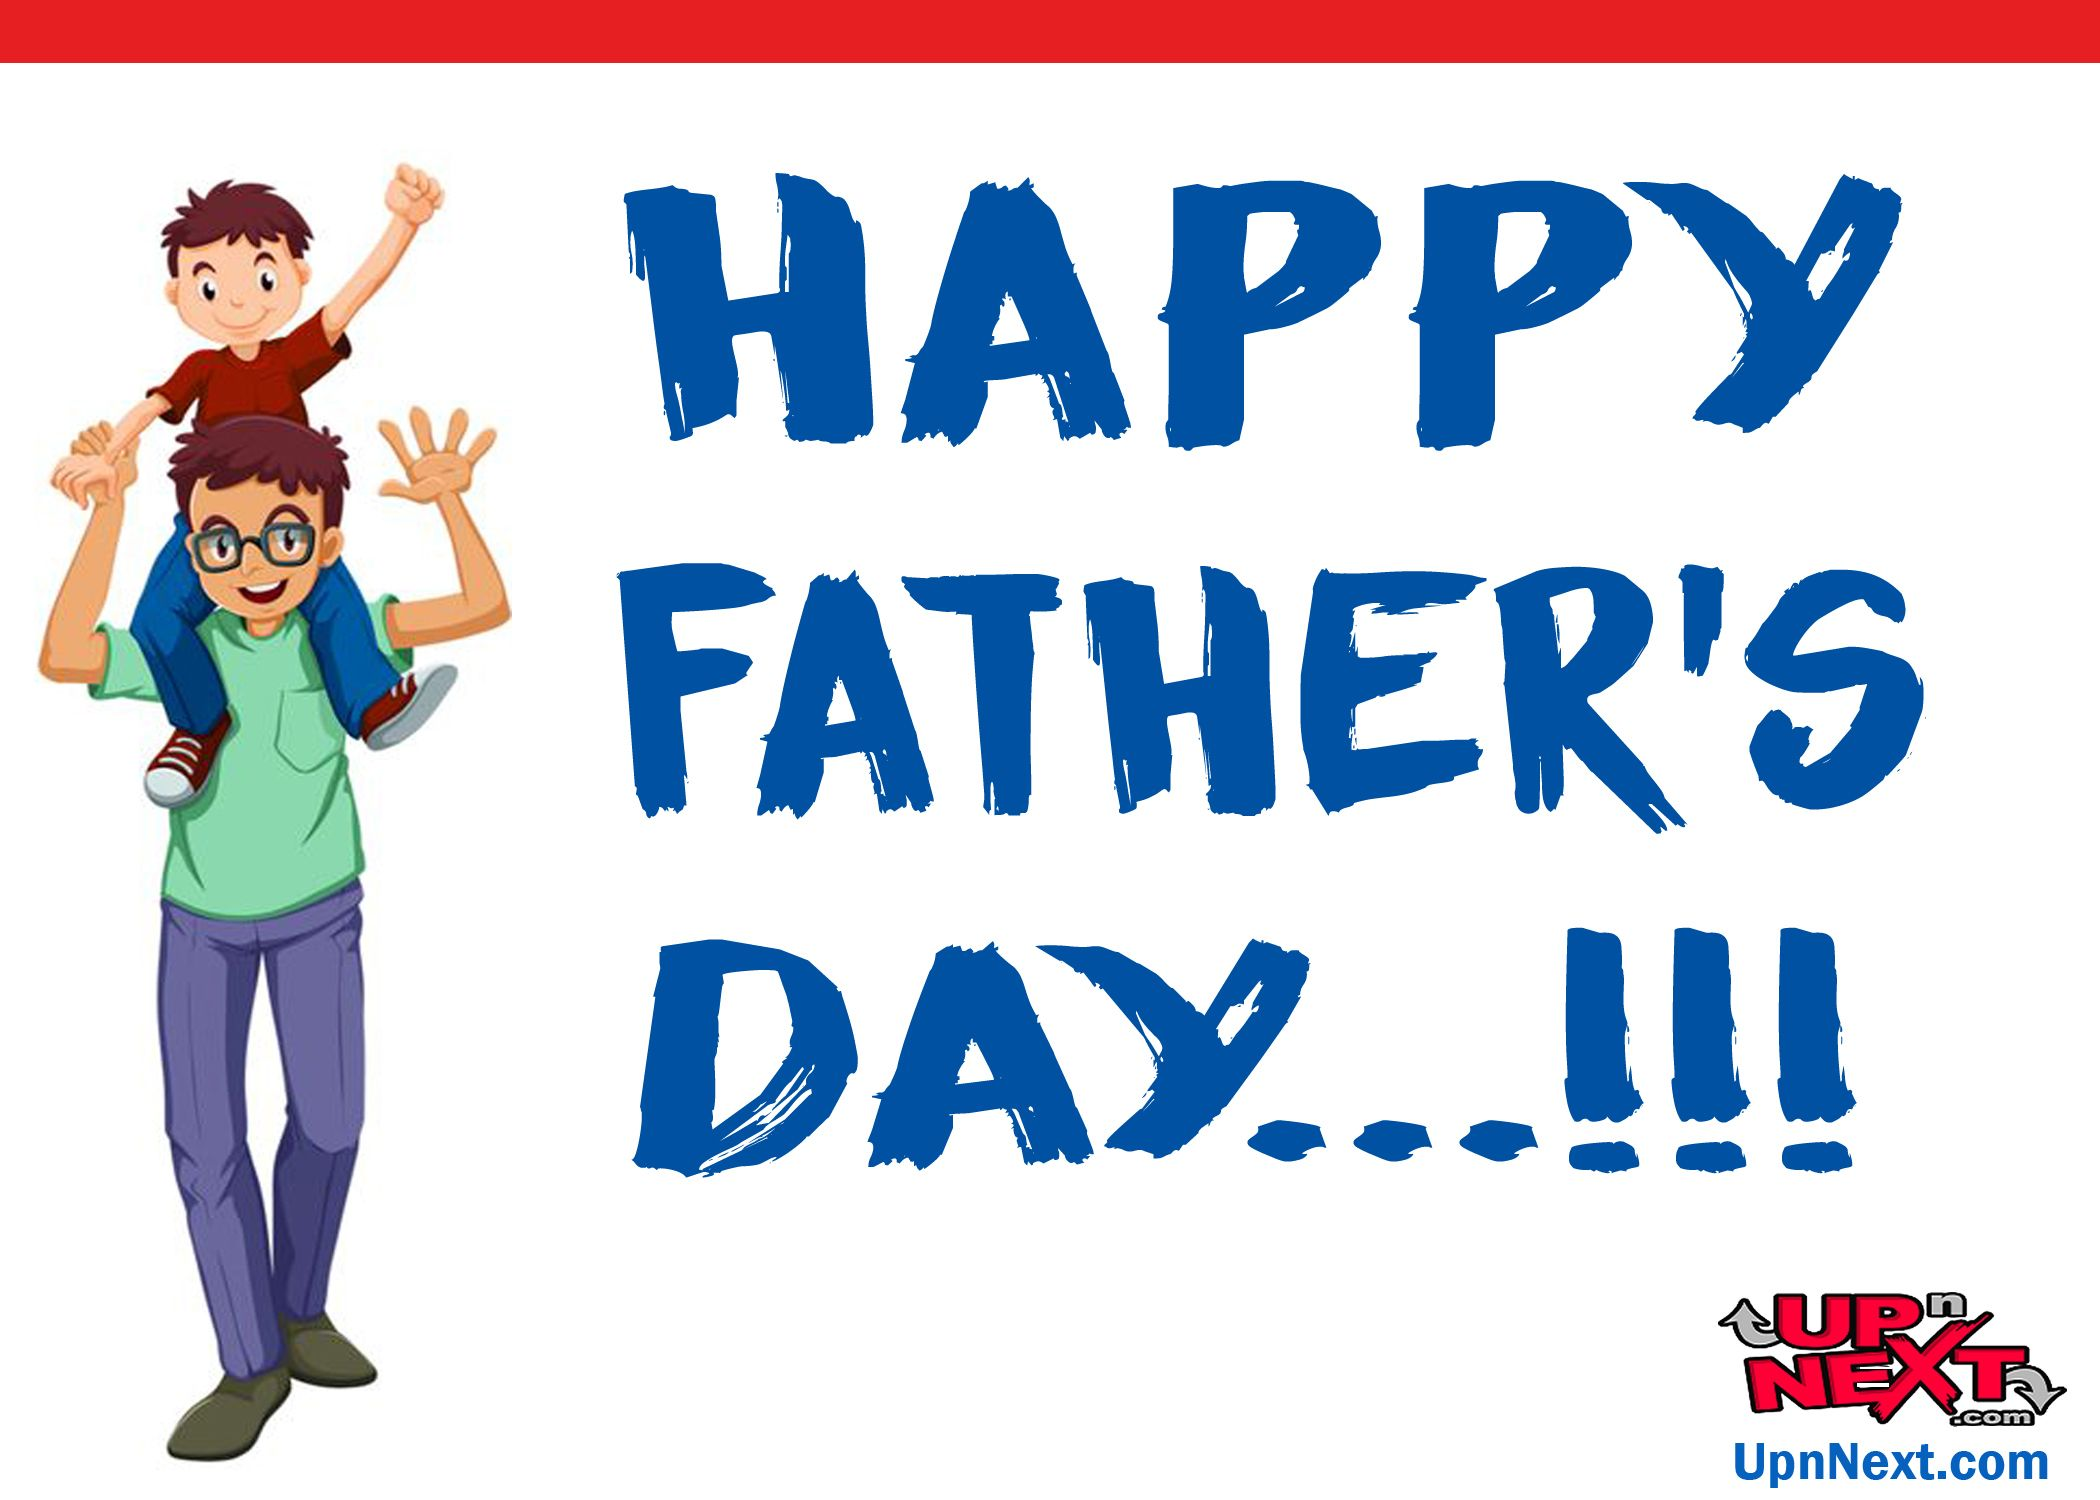 medium resolution of happy father s day get free fathersday cards for your dad with clip art of dad and son in this card son is sitting on dad s shoulders